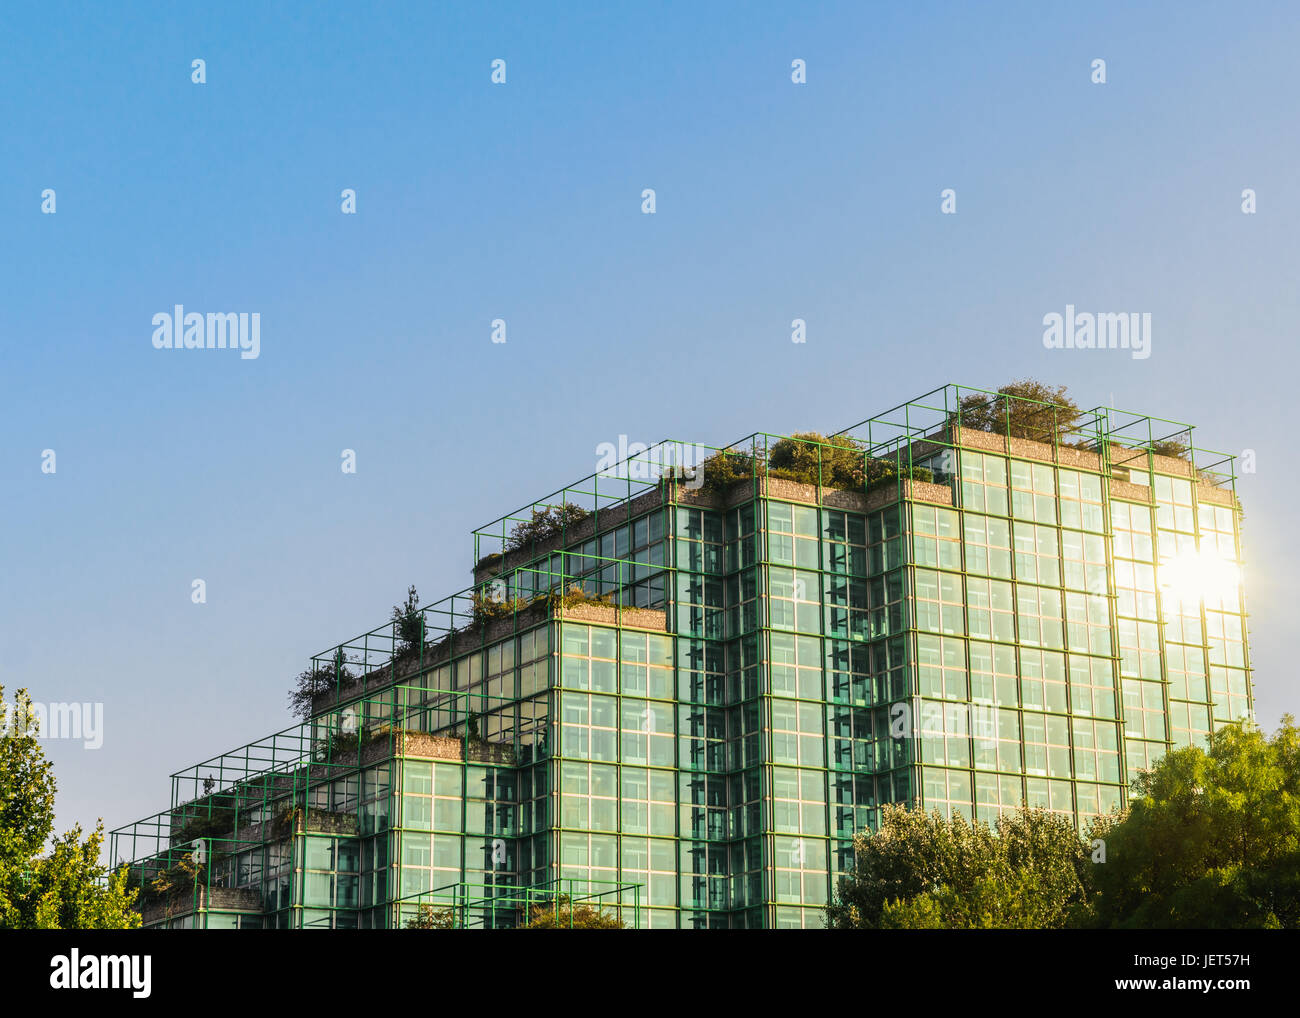 Agip headquarters in San Donato Milanese, Italy Stock Photo